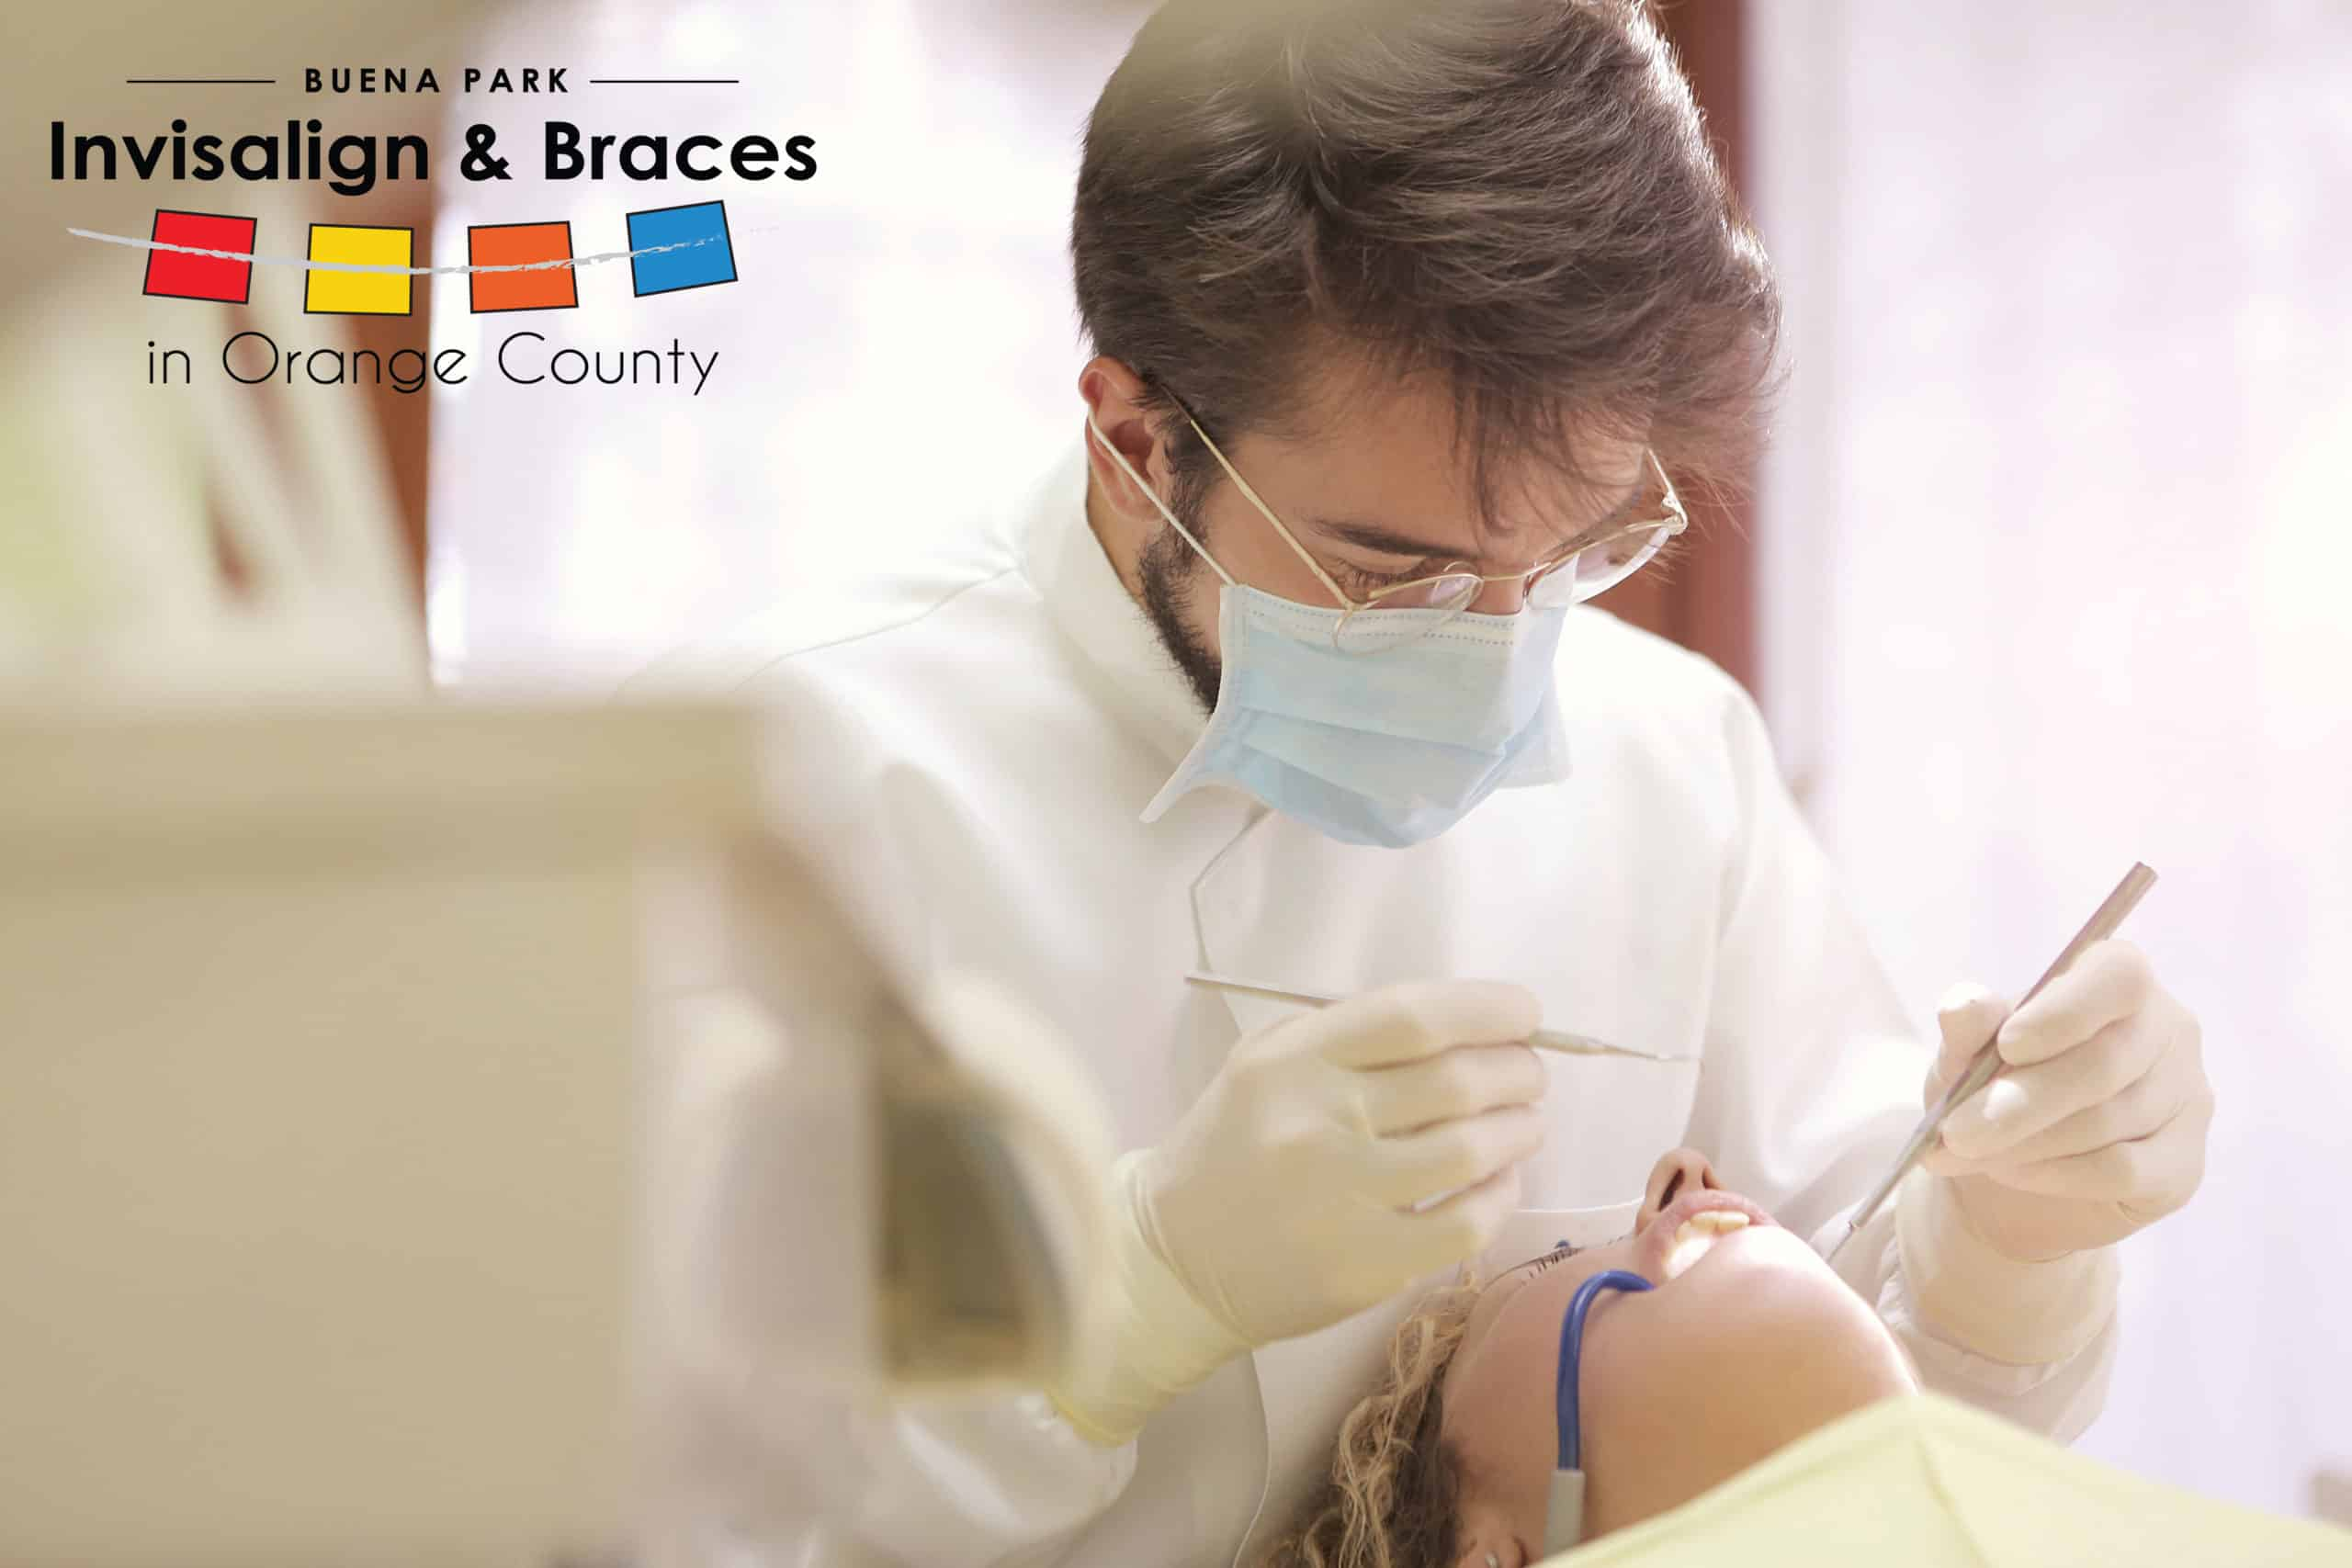 Welcome to Invisalign and Braces Buena Park